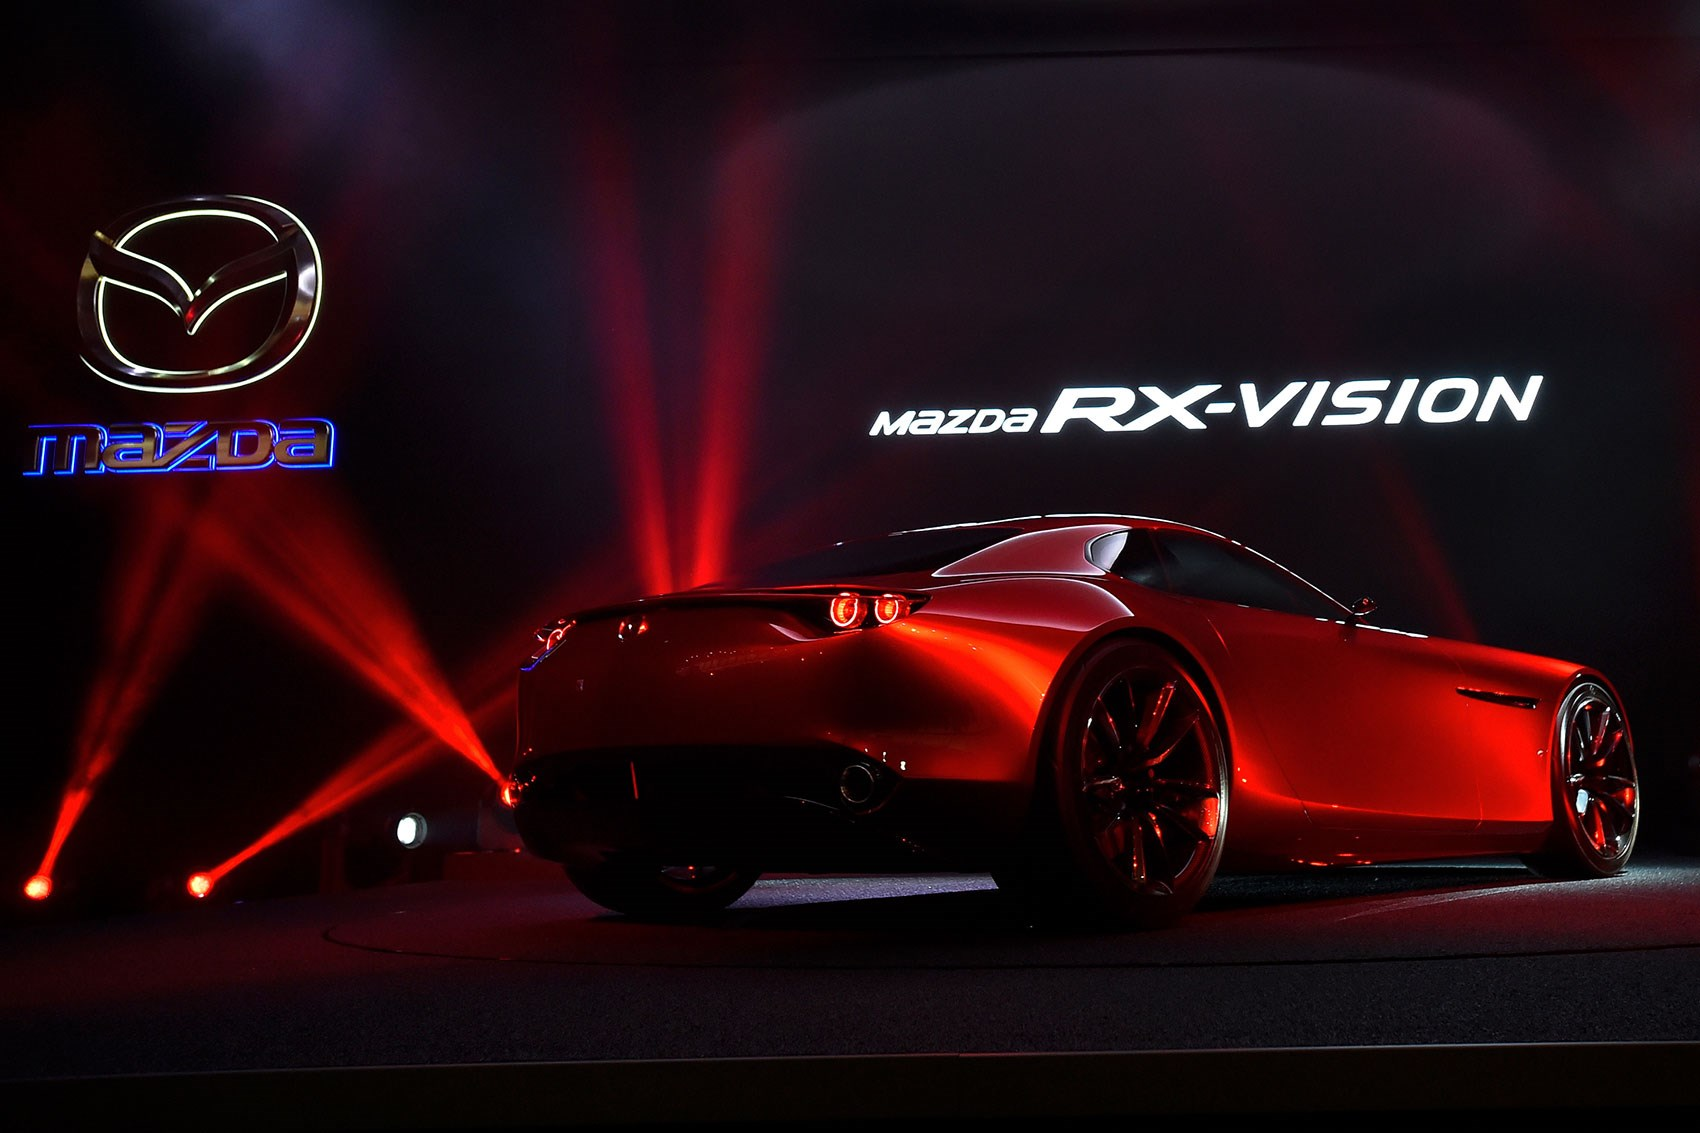 Mazdas Stunning Rotary Powered Sports Car Concept The Mazda Rx Vision Recently Won The Most Beautiful Concept Car Of The Year Award At The 31st